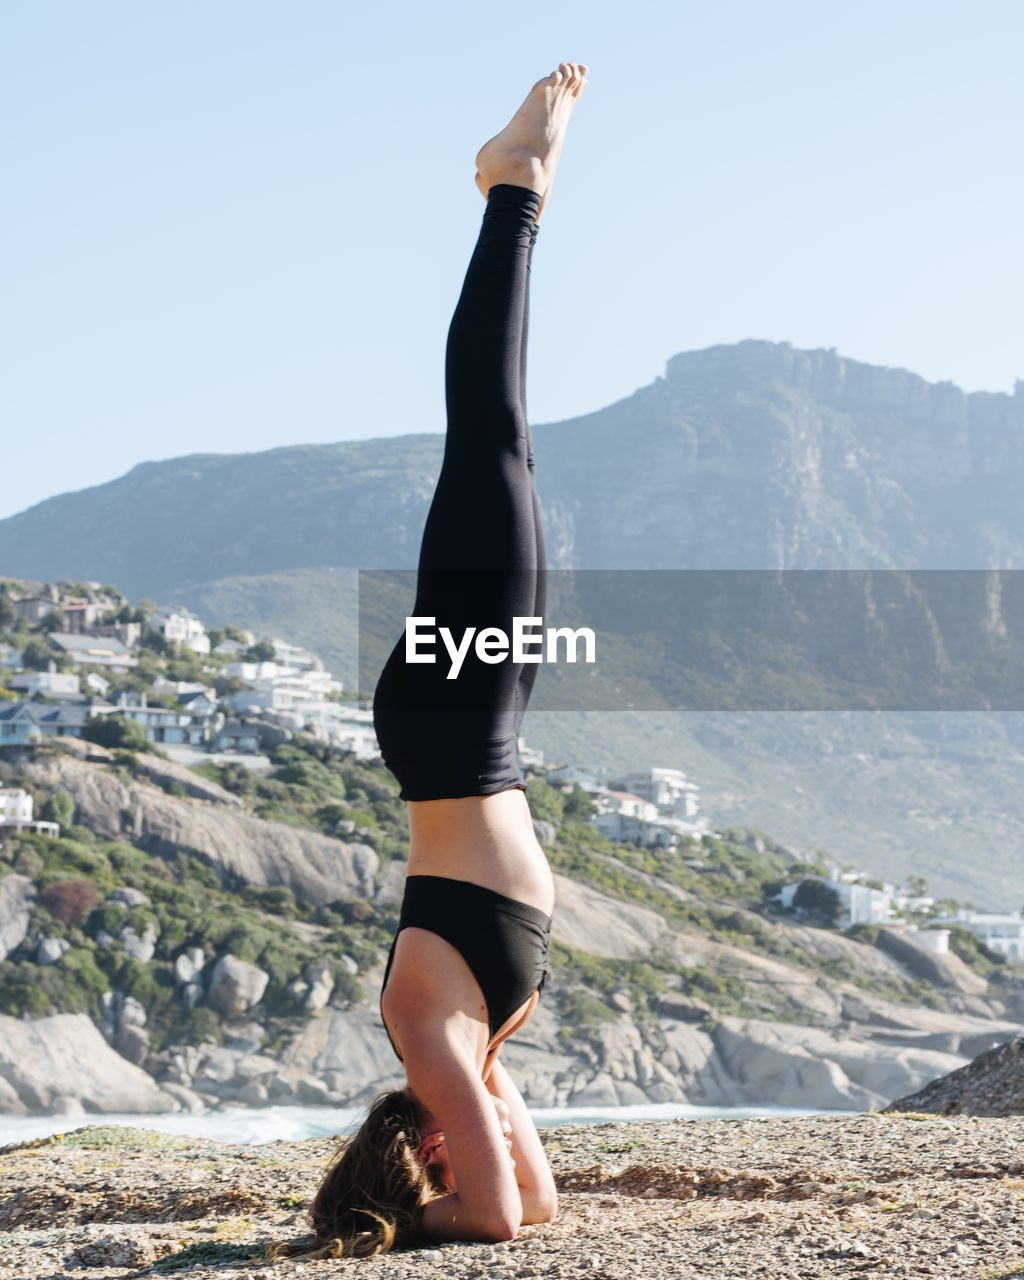 Woman practicing yoga on mountain against clear sky